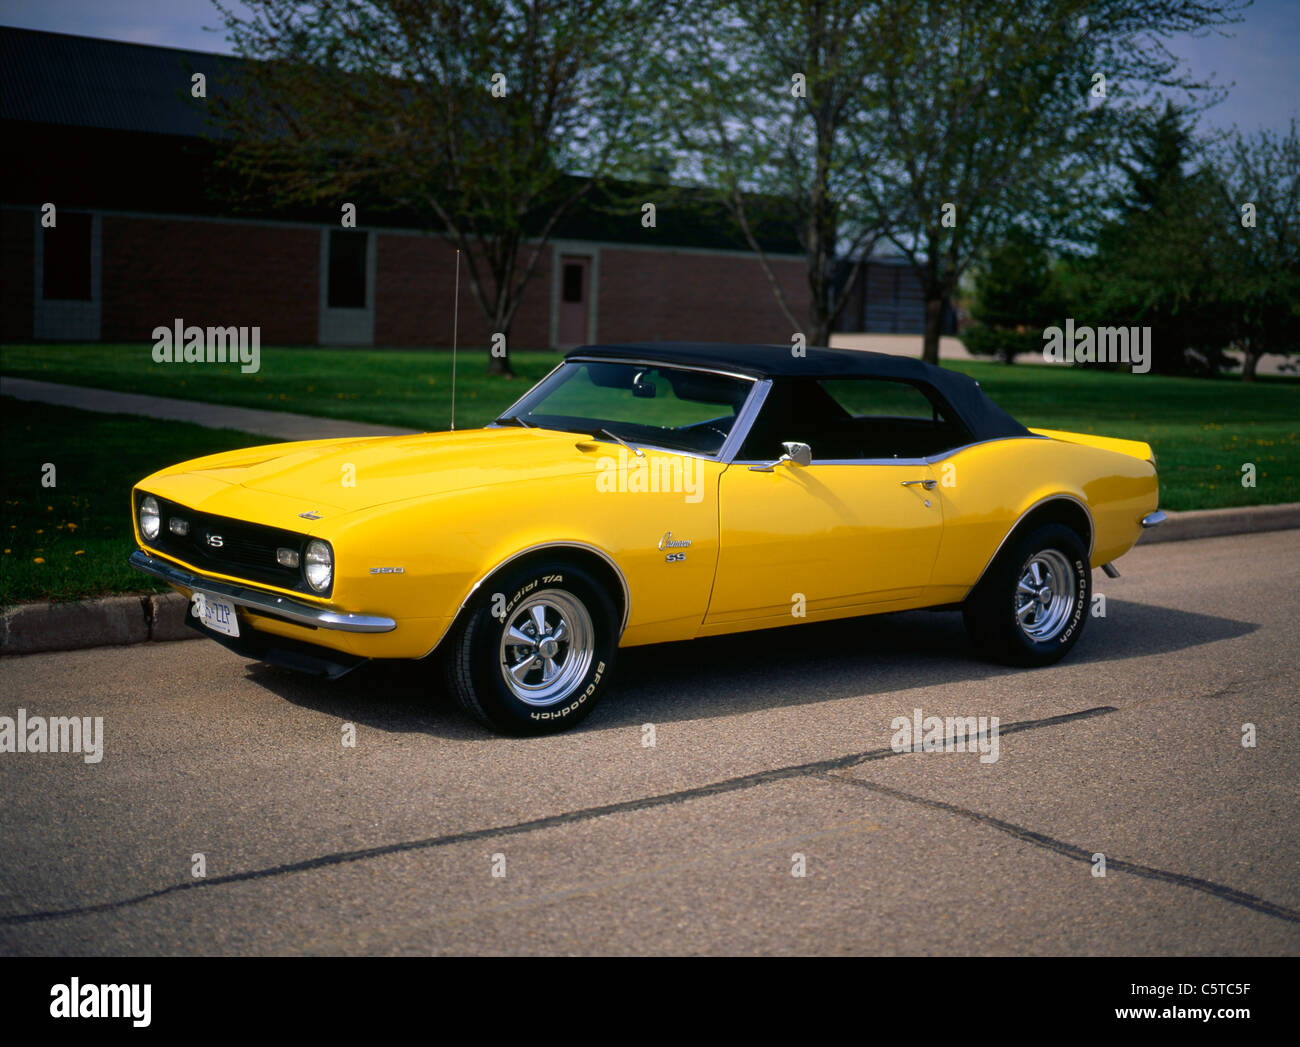 Camaro 68 chevrolet camaro : 1968 Chevrolet Camaro SS Stock Photo, Royalty Free Image: 38030427 ...